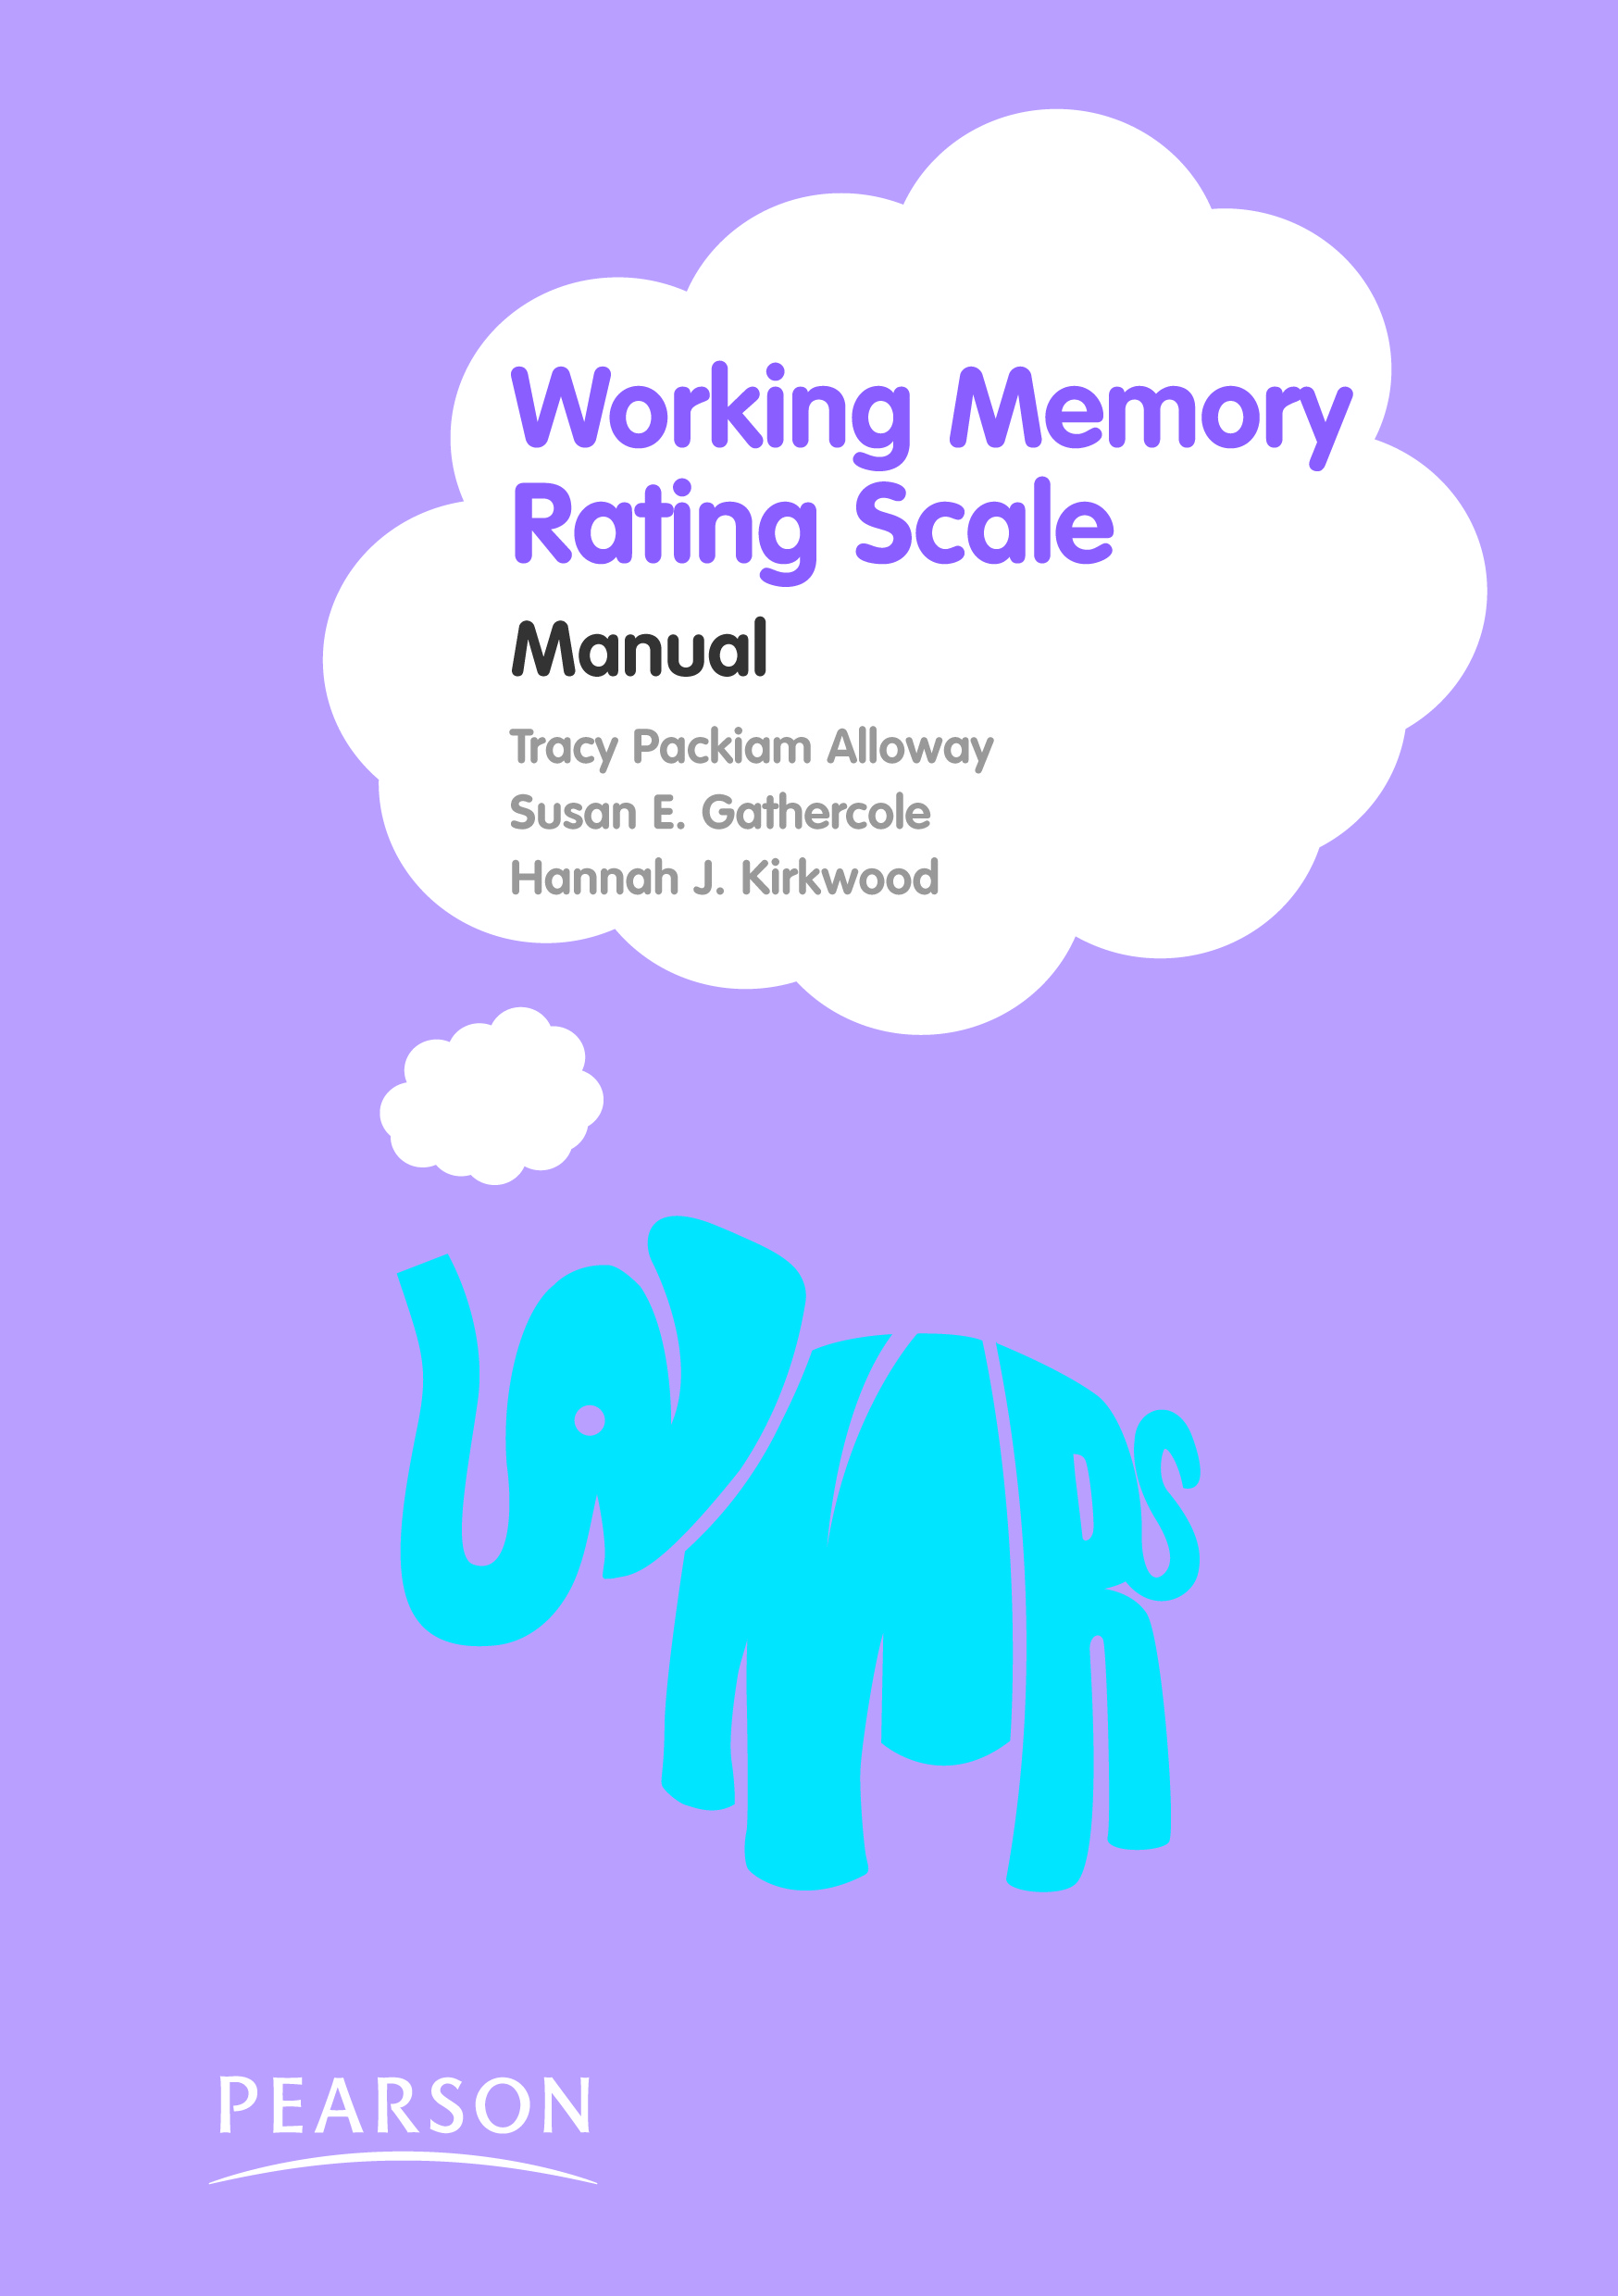 WMRS - Purpose: Identify classroom behaviors associated with working memory deficitsAge Range: 5 to 11 yearsAdministration: Paper & pencilScoring: ManualBUY AUSTRALIABUY CANADABUY UK